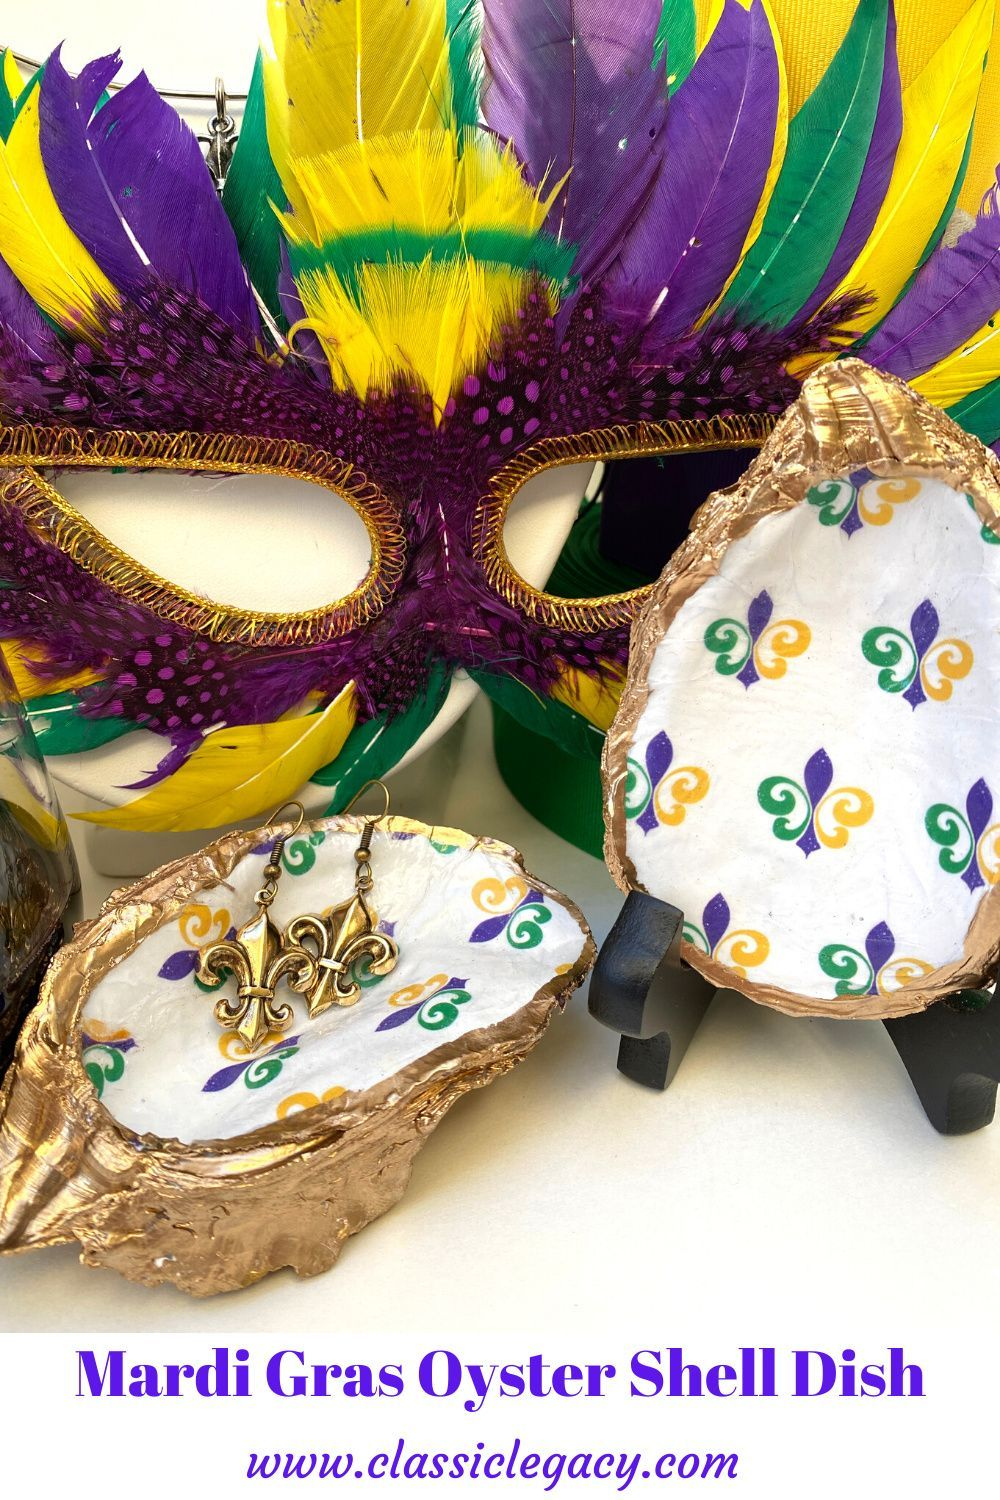 Mardi Gras oyster shell ornaments with charms